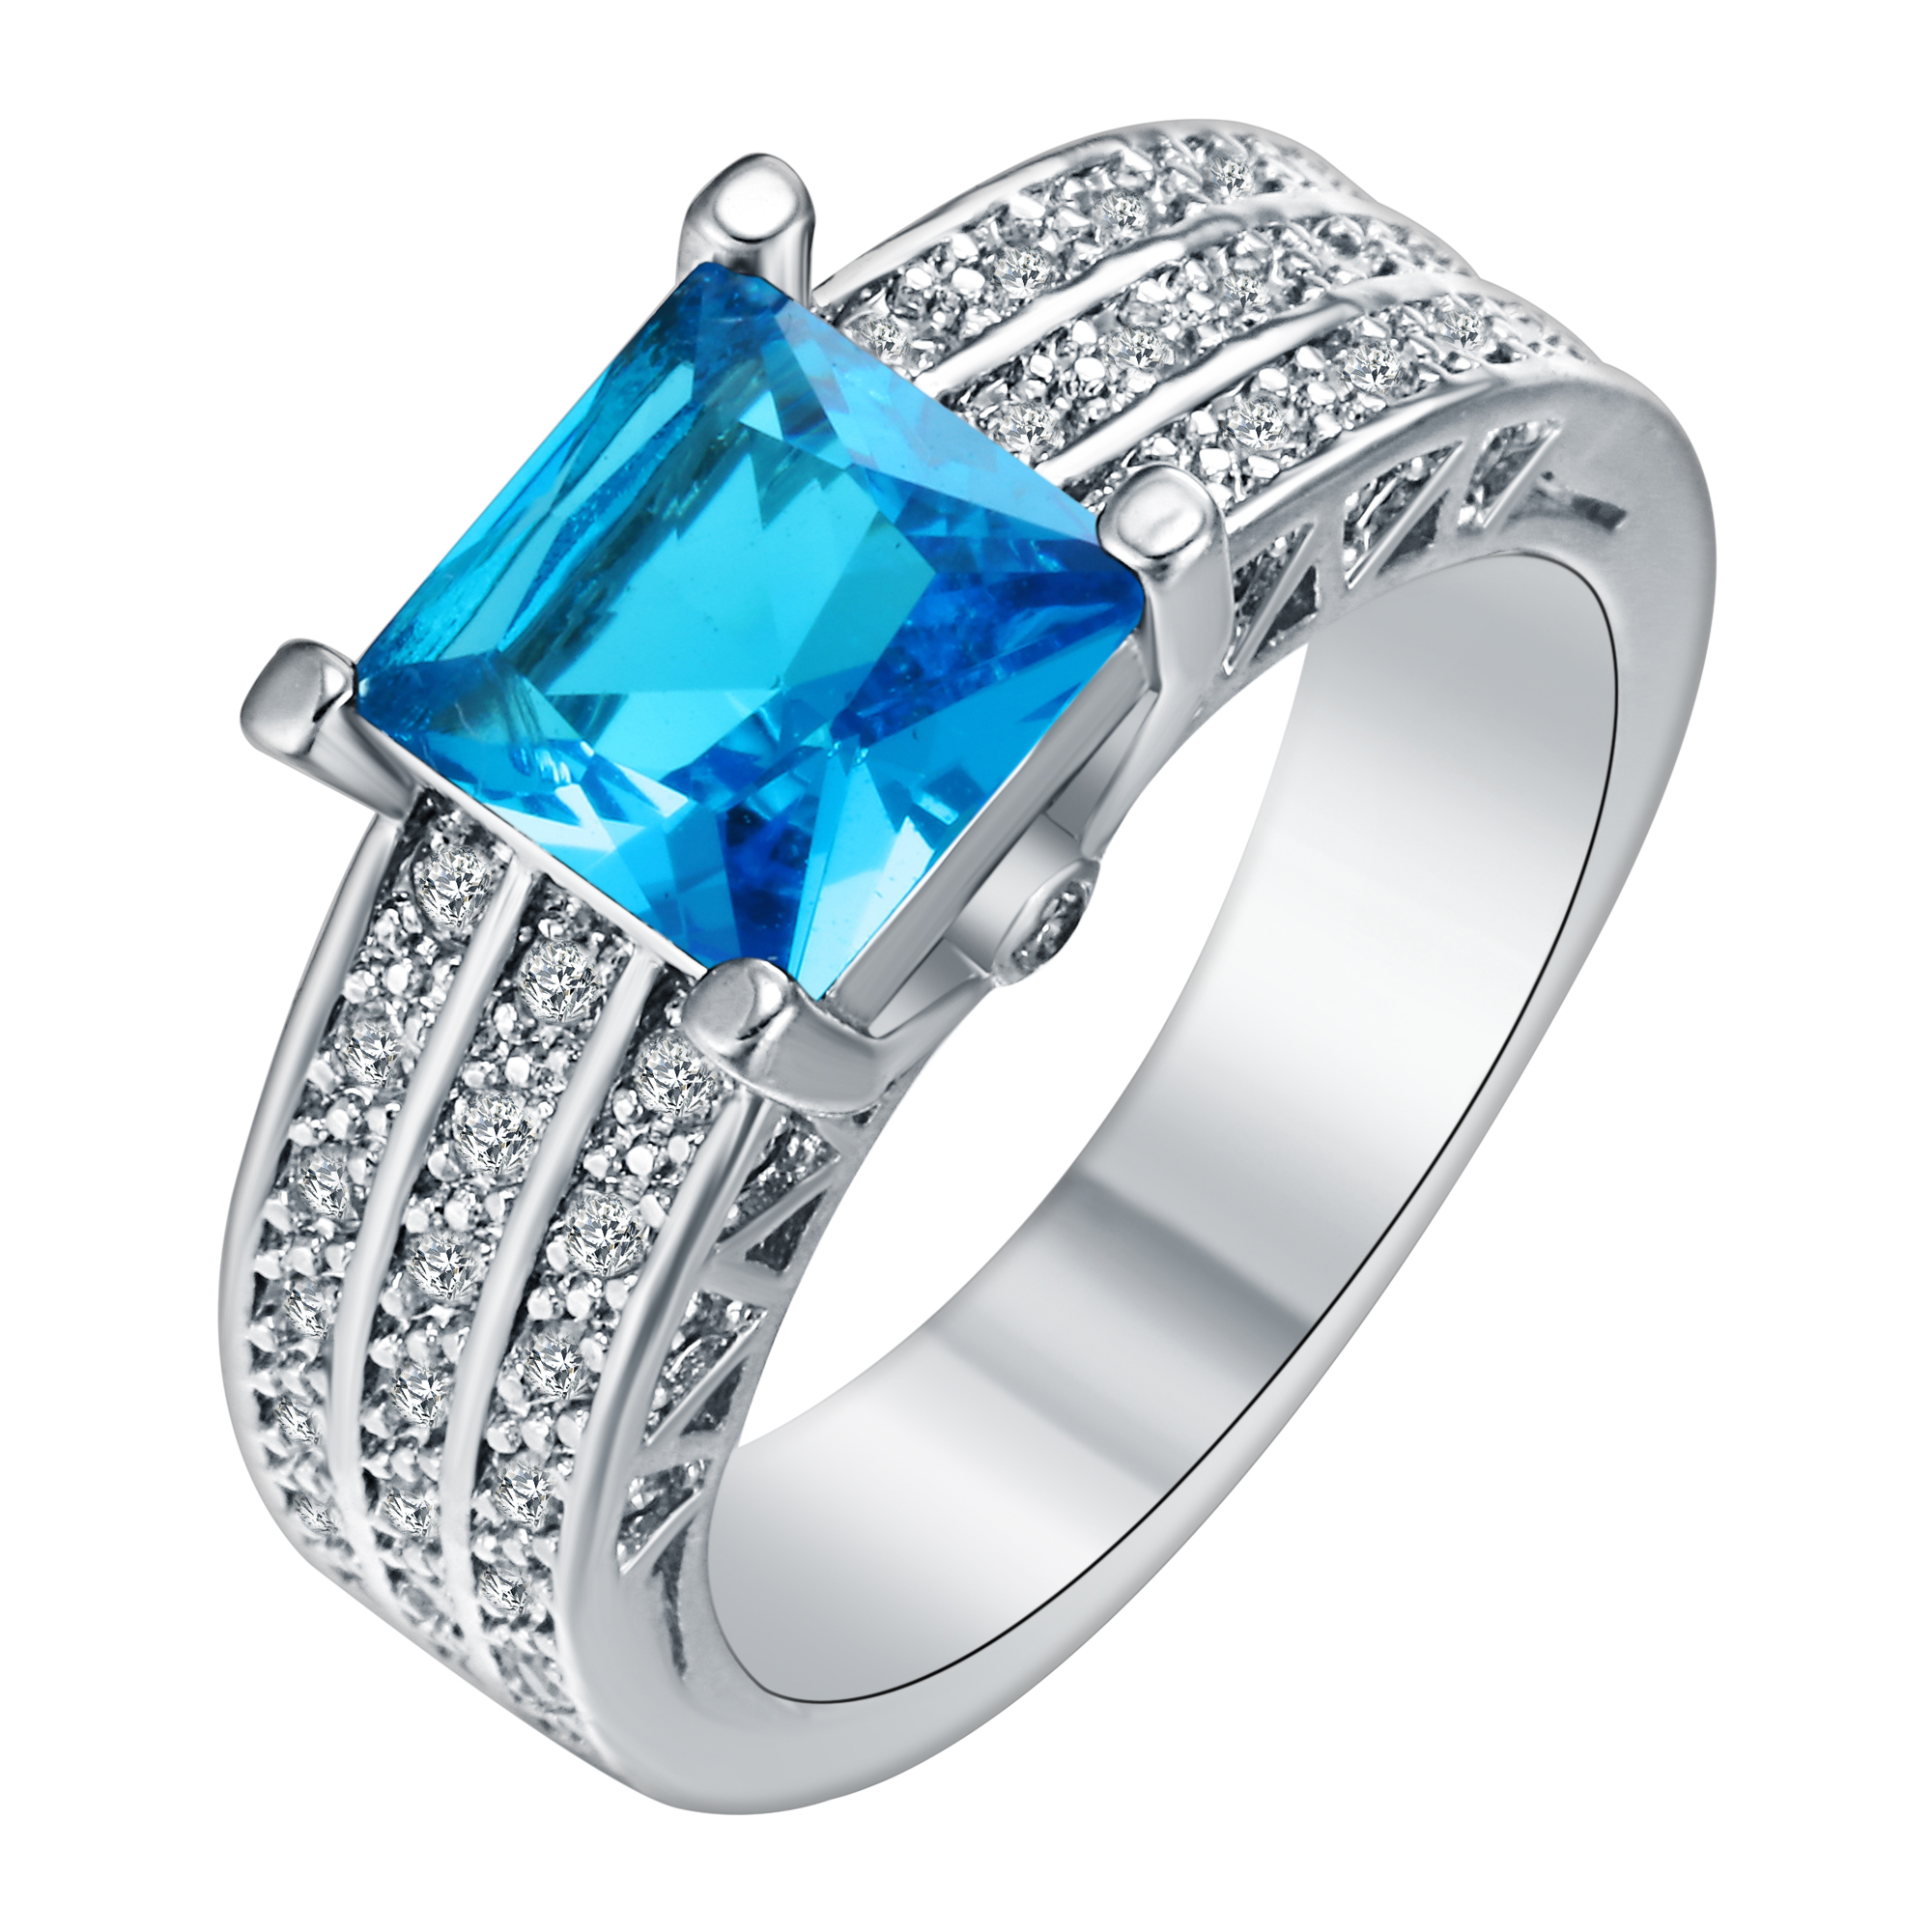 platinum gold wedding ring sets beautiful wedding bands White Gold Vs Platinum For Wedding Rings What S The Difference